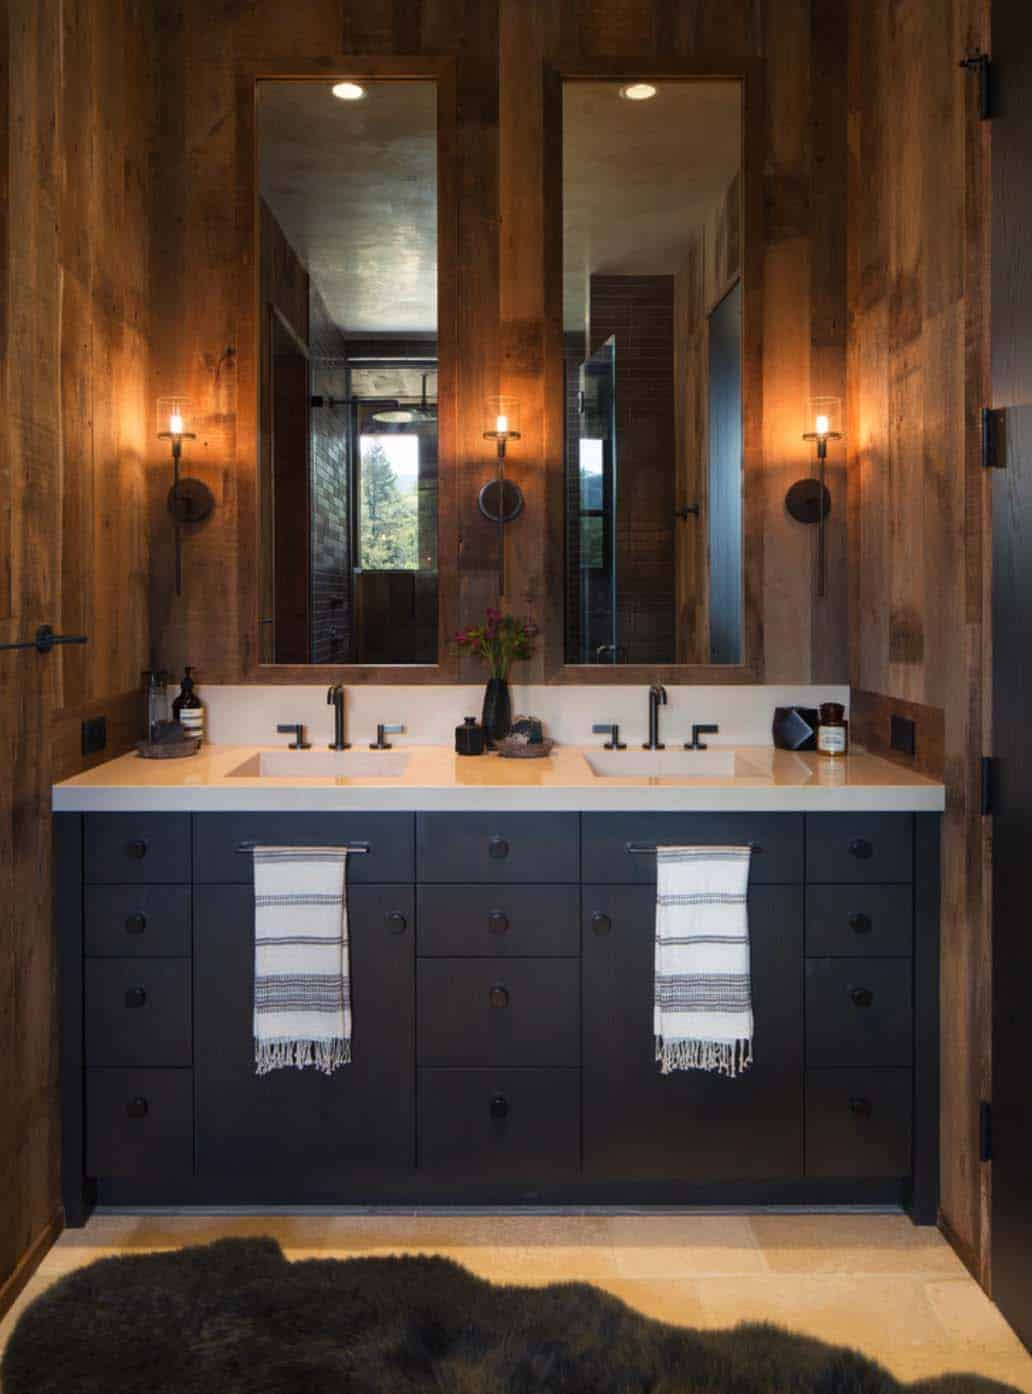 The rustic bathroom has beautiful wood walls and a gray double sink vanity with two mirrors.